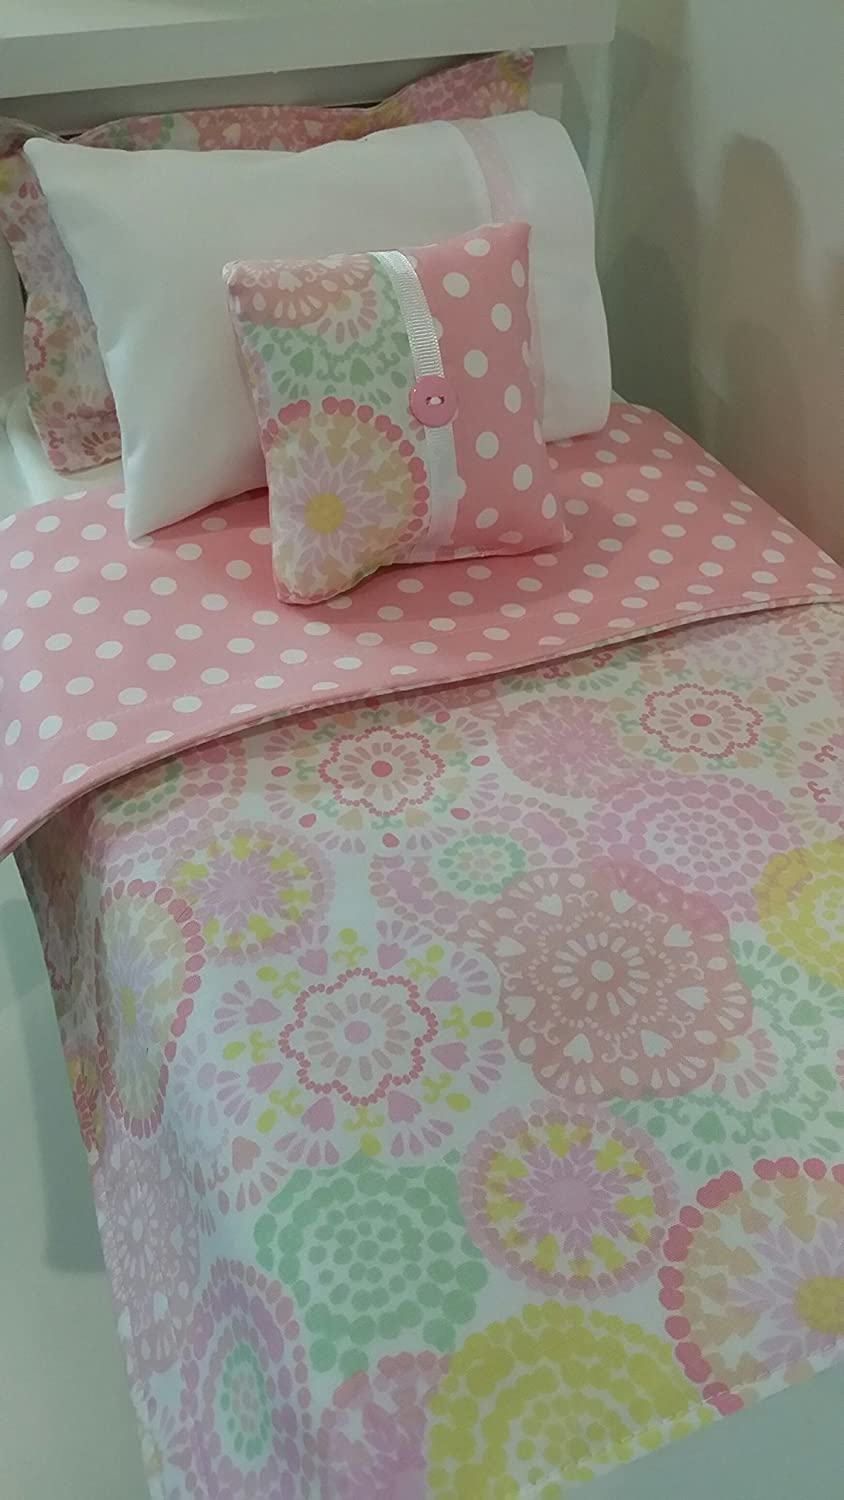 18 Doll Bedding, Pastel Flowery Doll Bedding Made to Fit American Girl Dolls 18 Doll Bedding